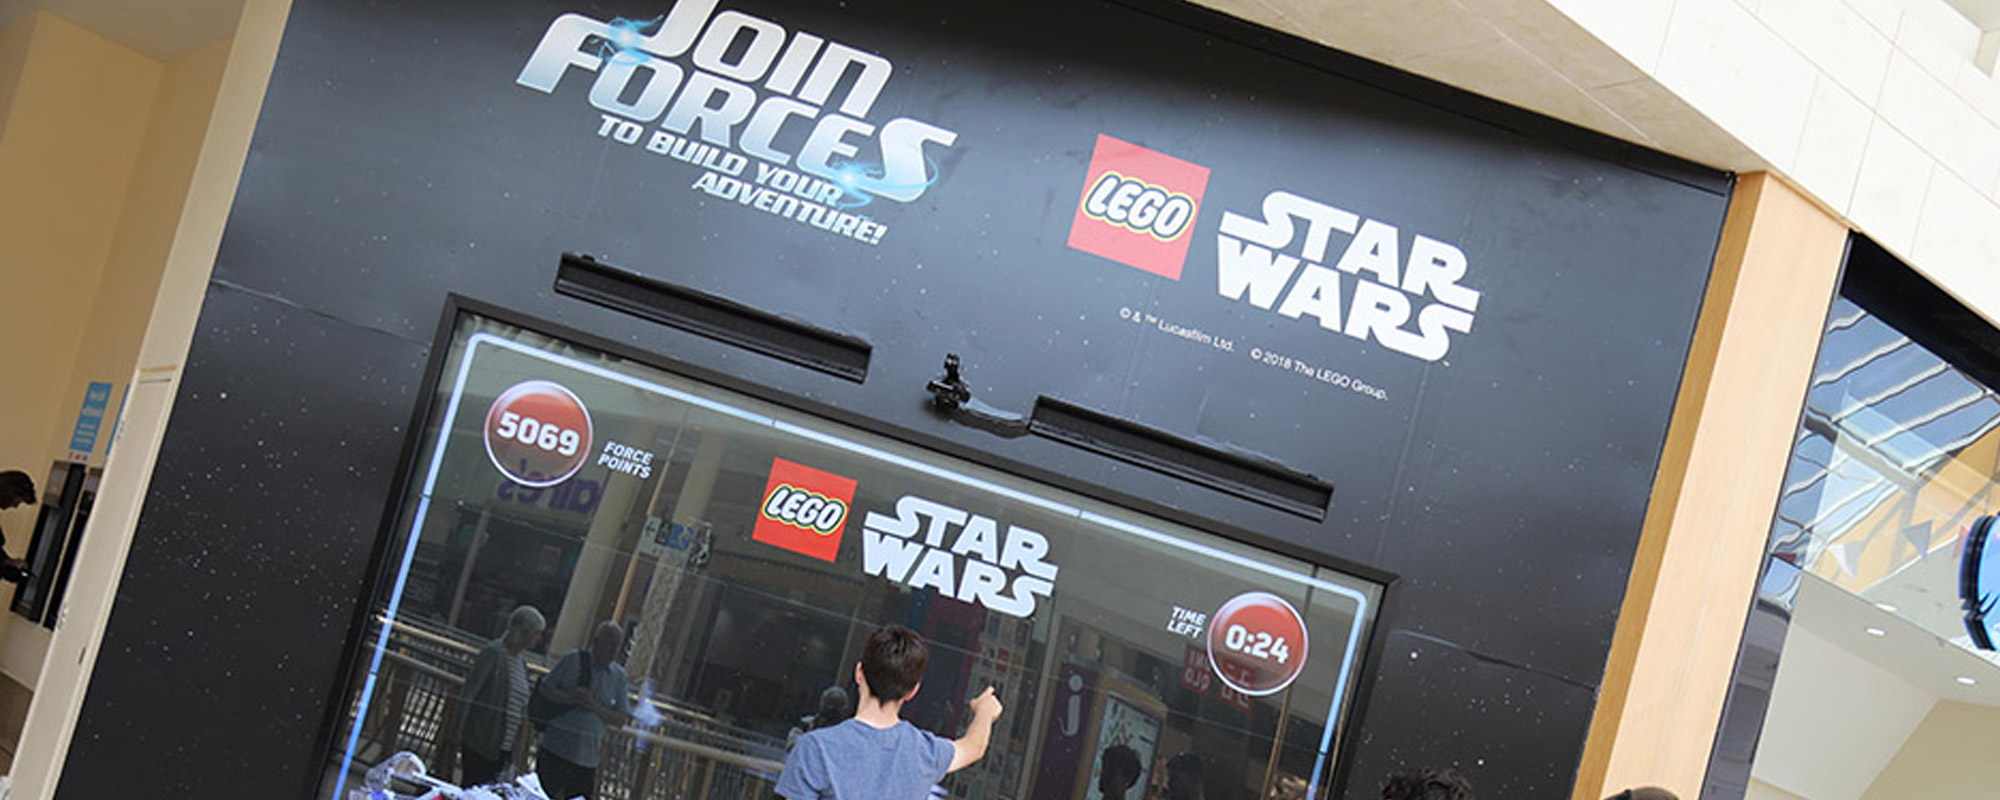 The Force is Strong with LEGO Star Wars' Hi-Tech Gesture-Based DOOH Campaign